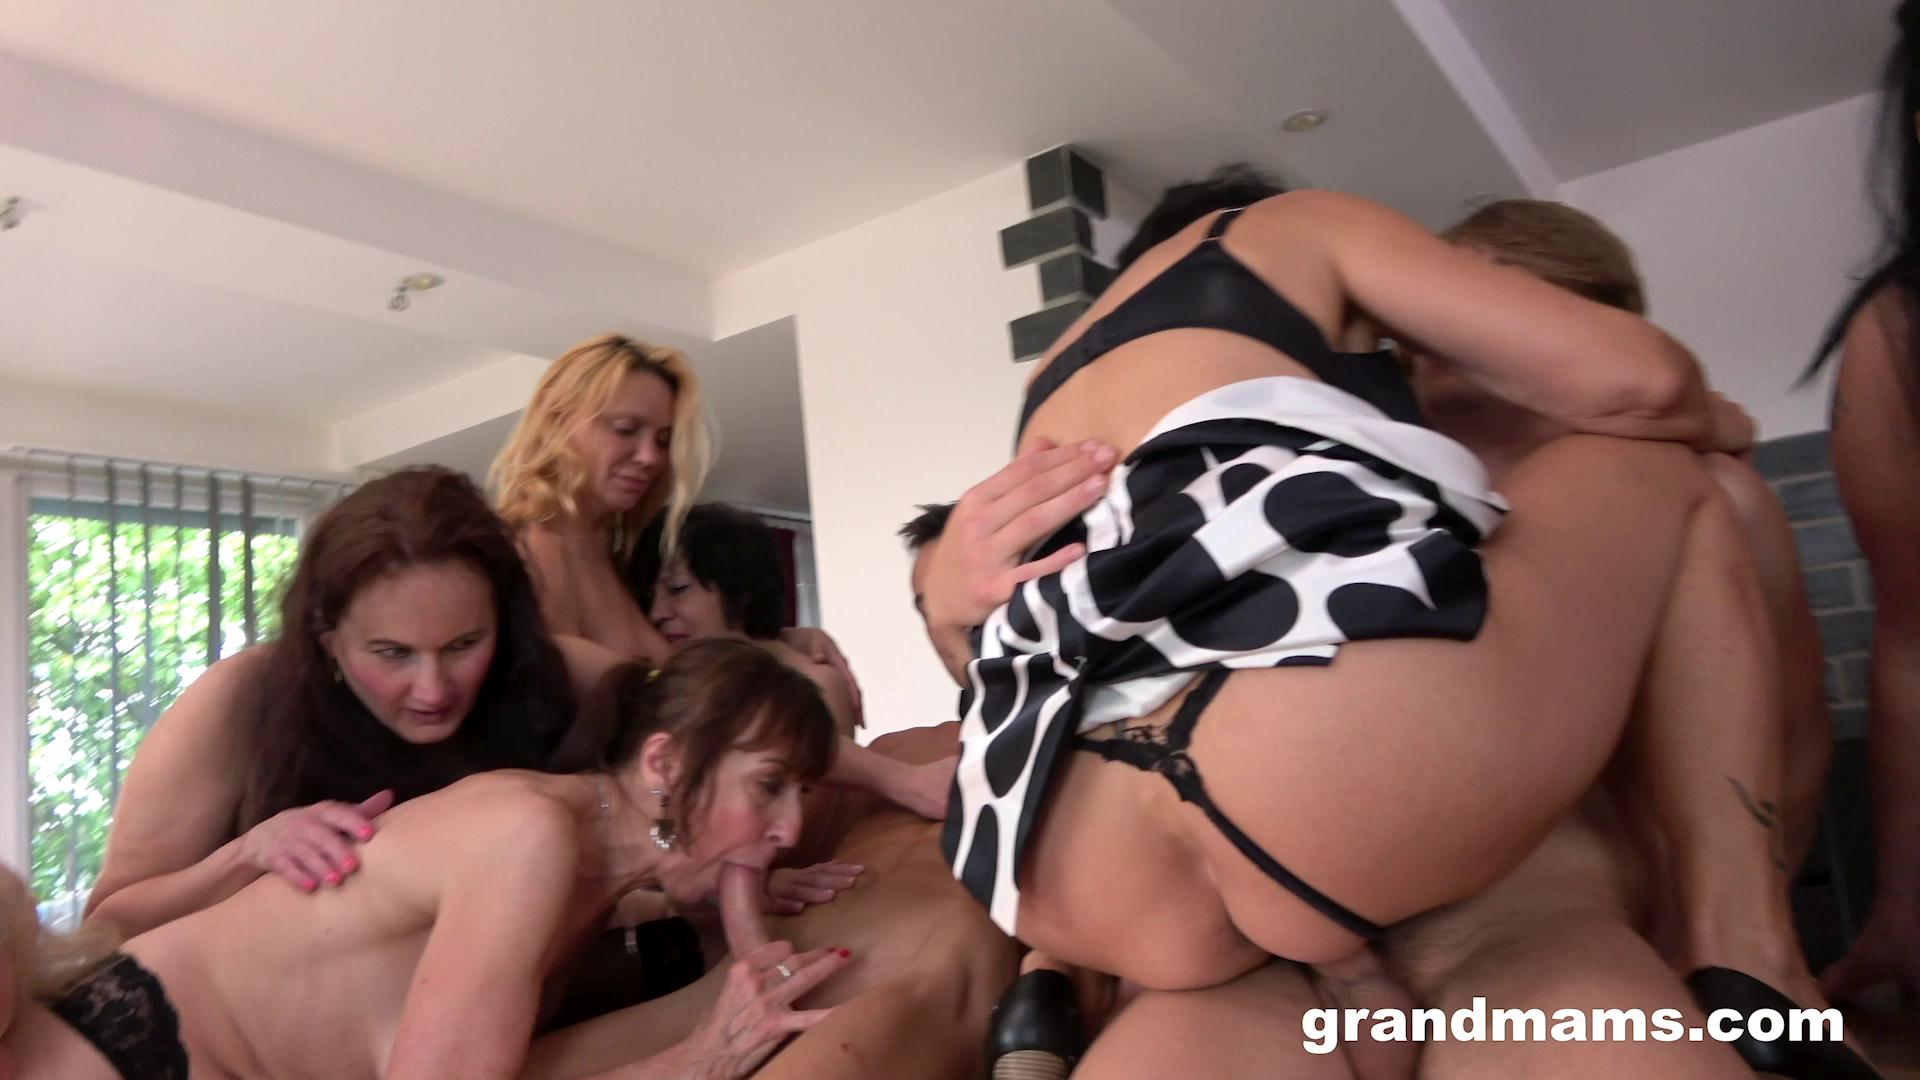 [GrandMams] Horny Grandmams And Toyboys Part 3 (07.21.2020)